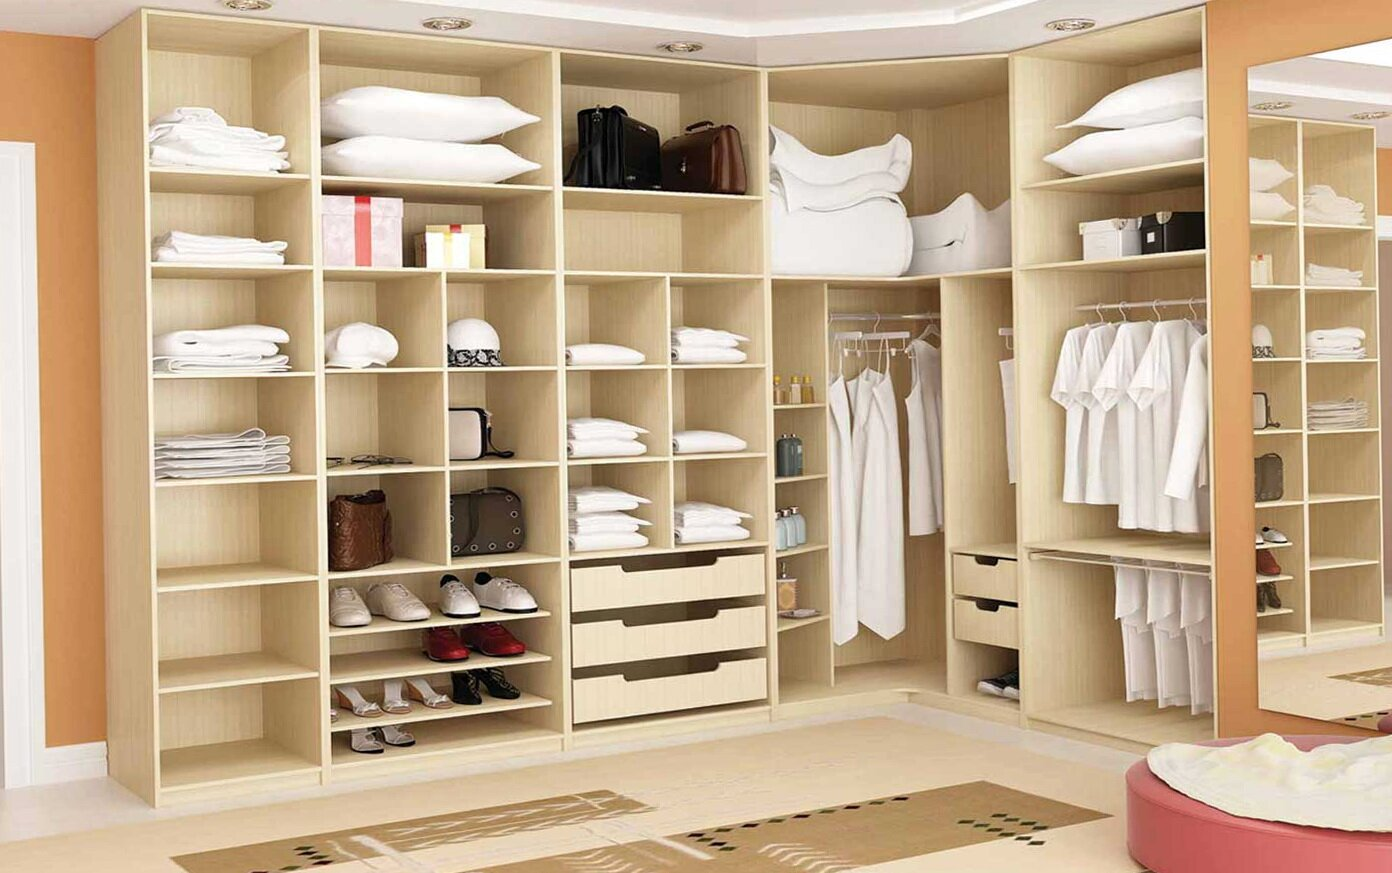 Closet Interesting Clothes Storage Design With Closet Design Tool Free  Closet Design Software Online